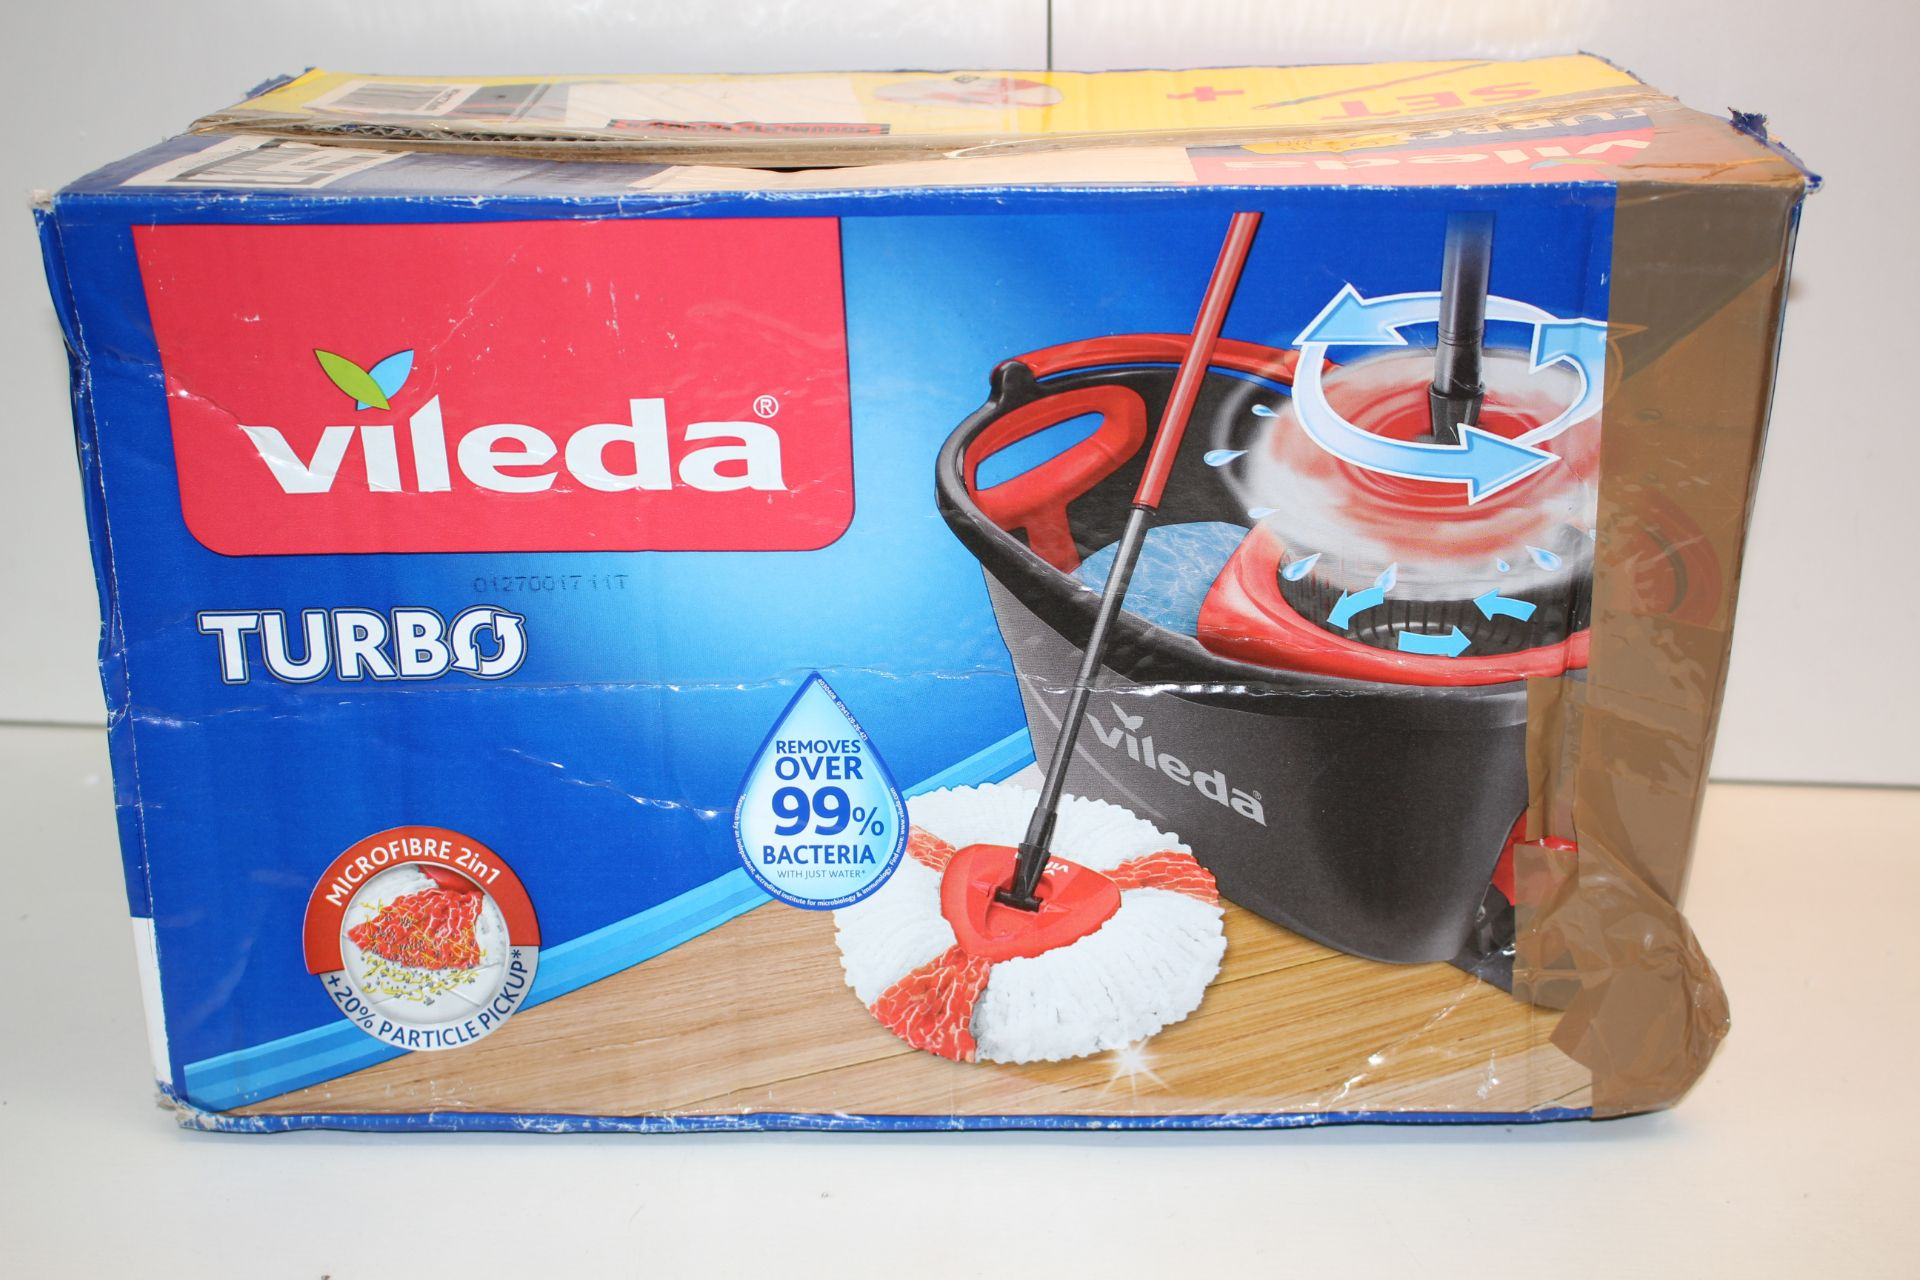 BOXED VILEDA TURBO MOPCondition ReportAppraisal Available on Request- All Items are Unchecked/